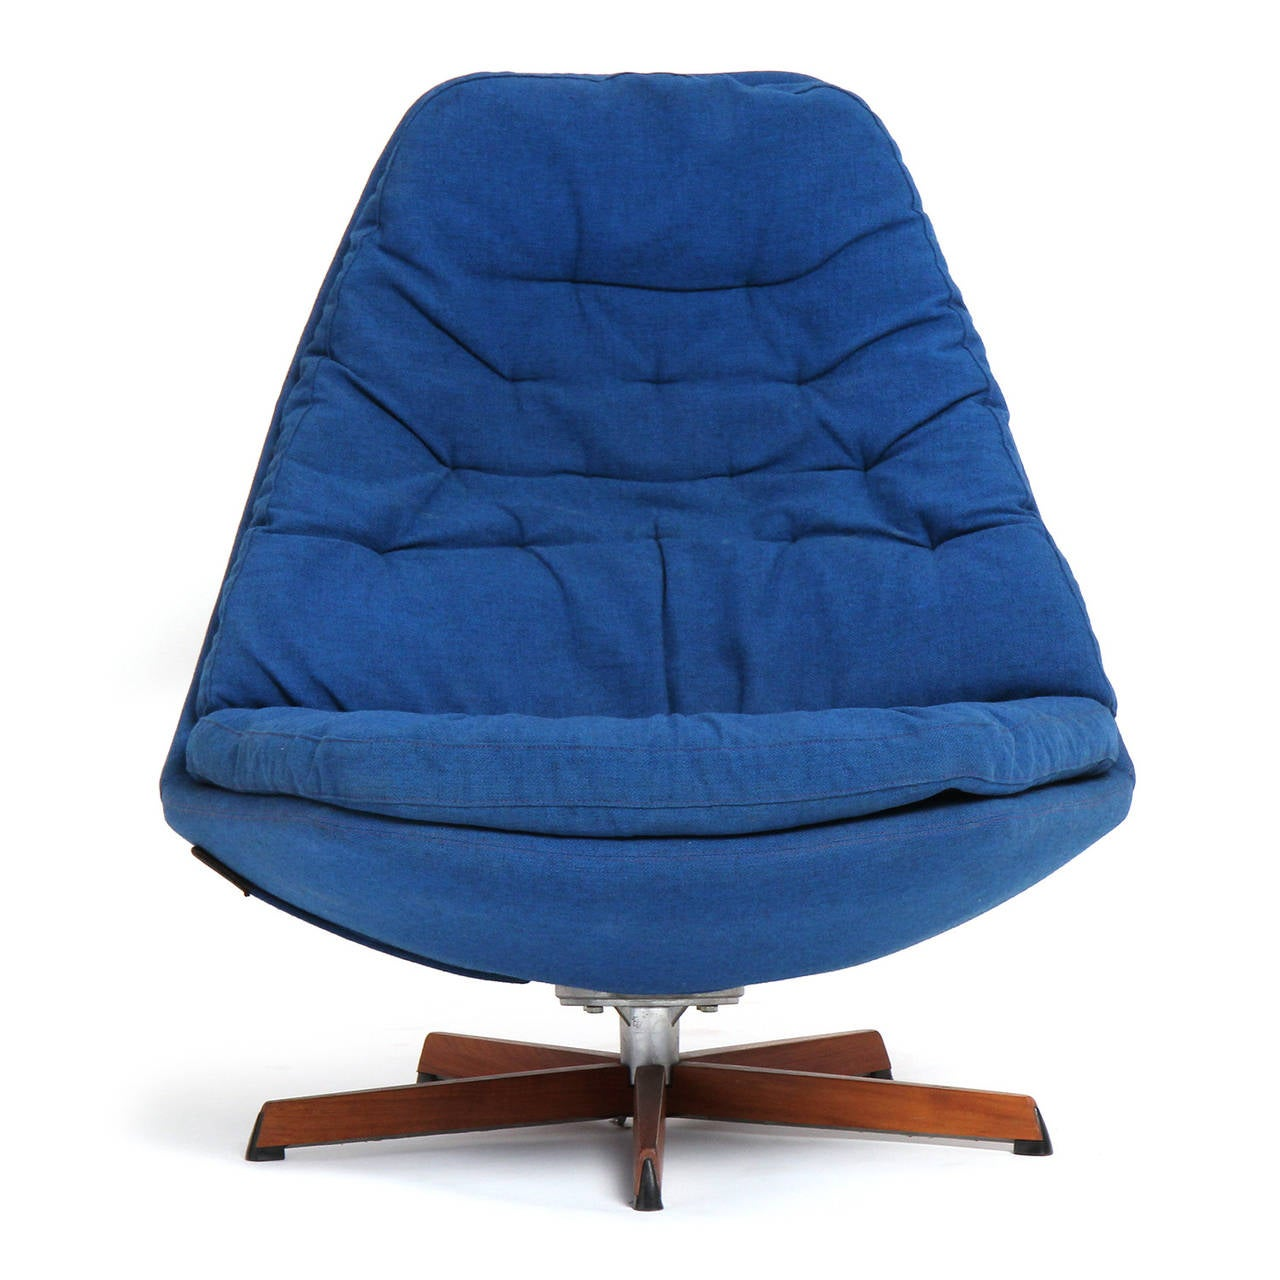 Mid-20th Century Swivelling Lounge Chair by Henry Klein For Sale